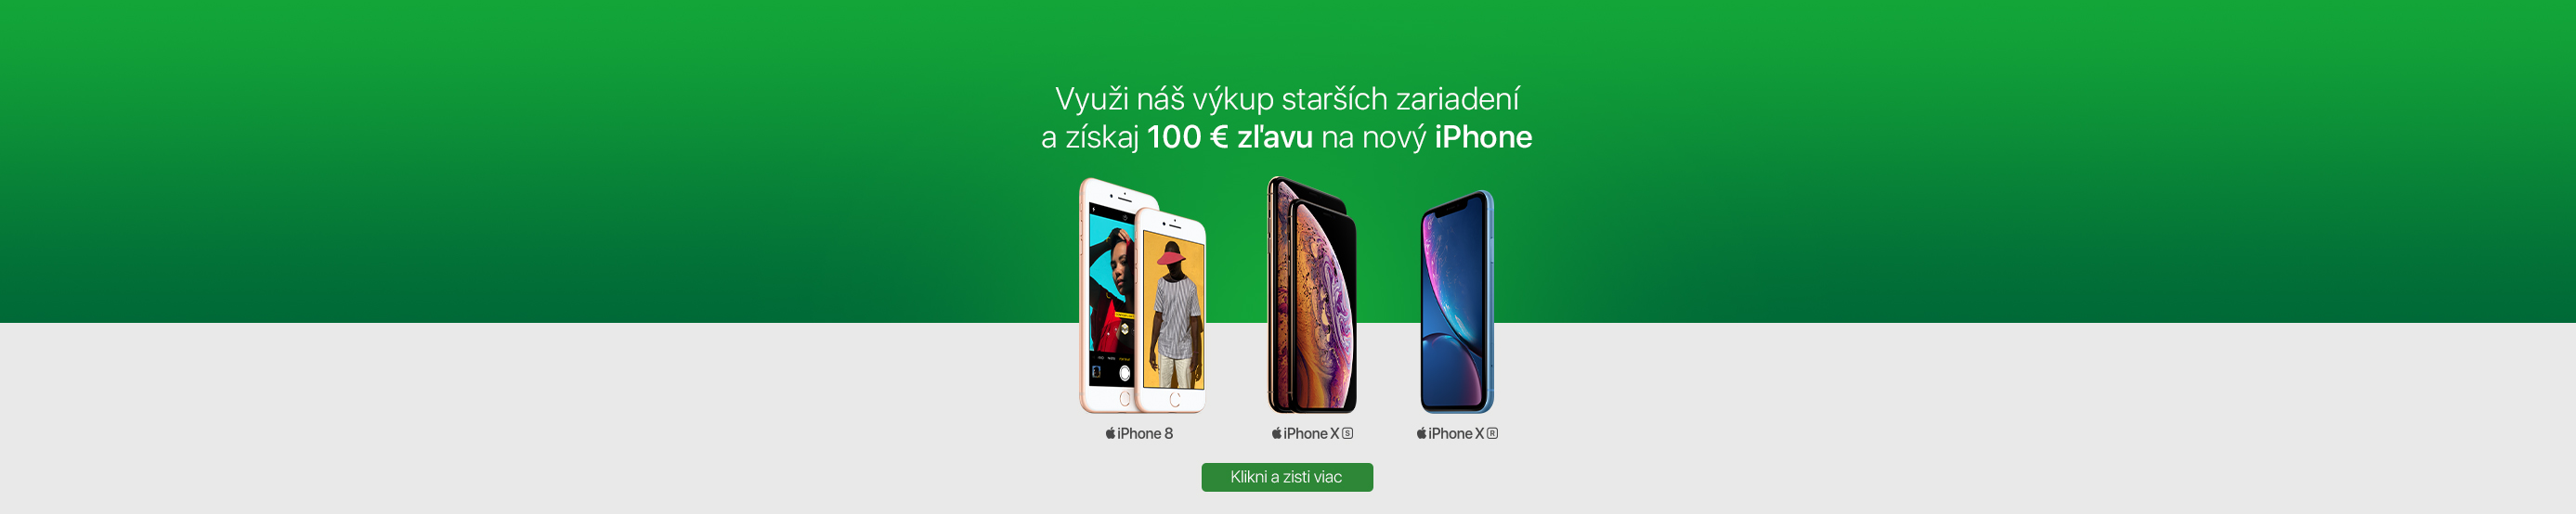 iPhone XR so 100 € bonusom za výkup